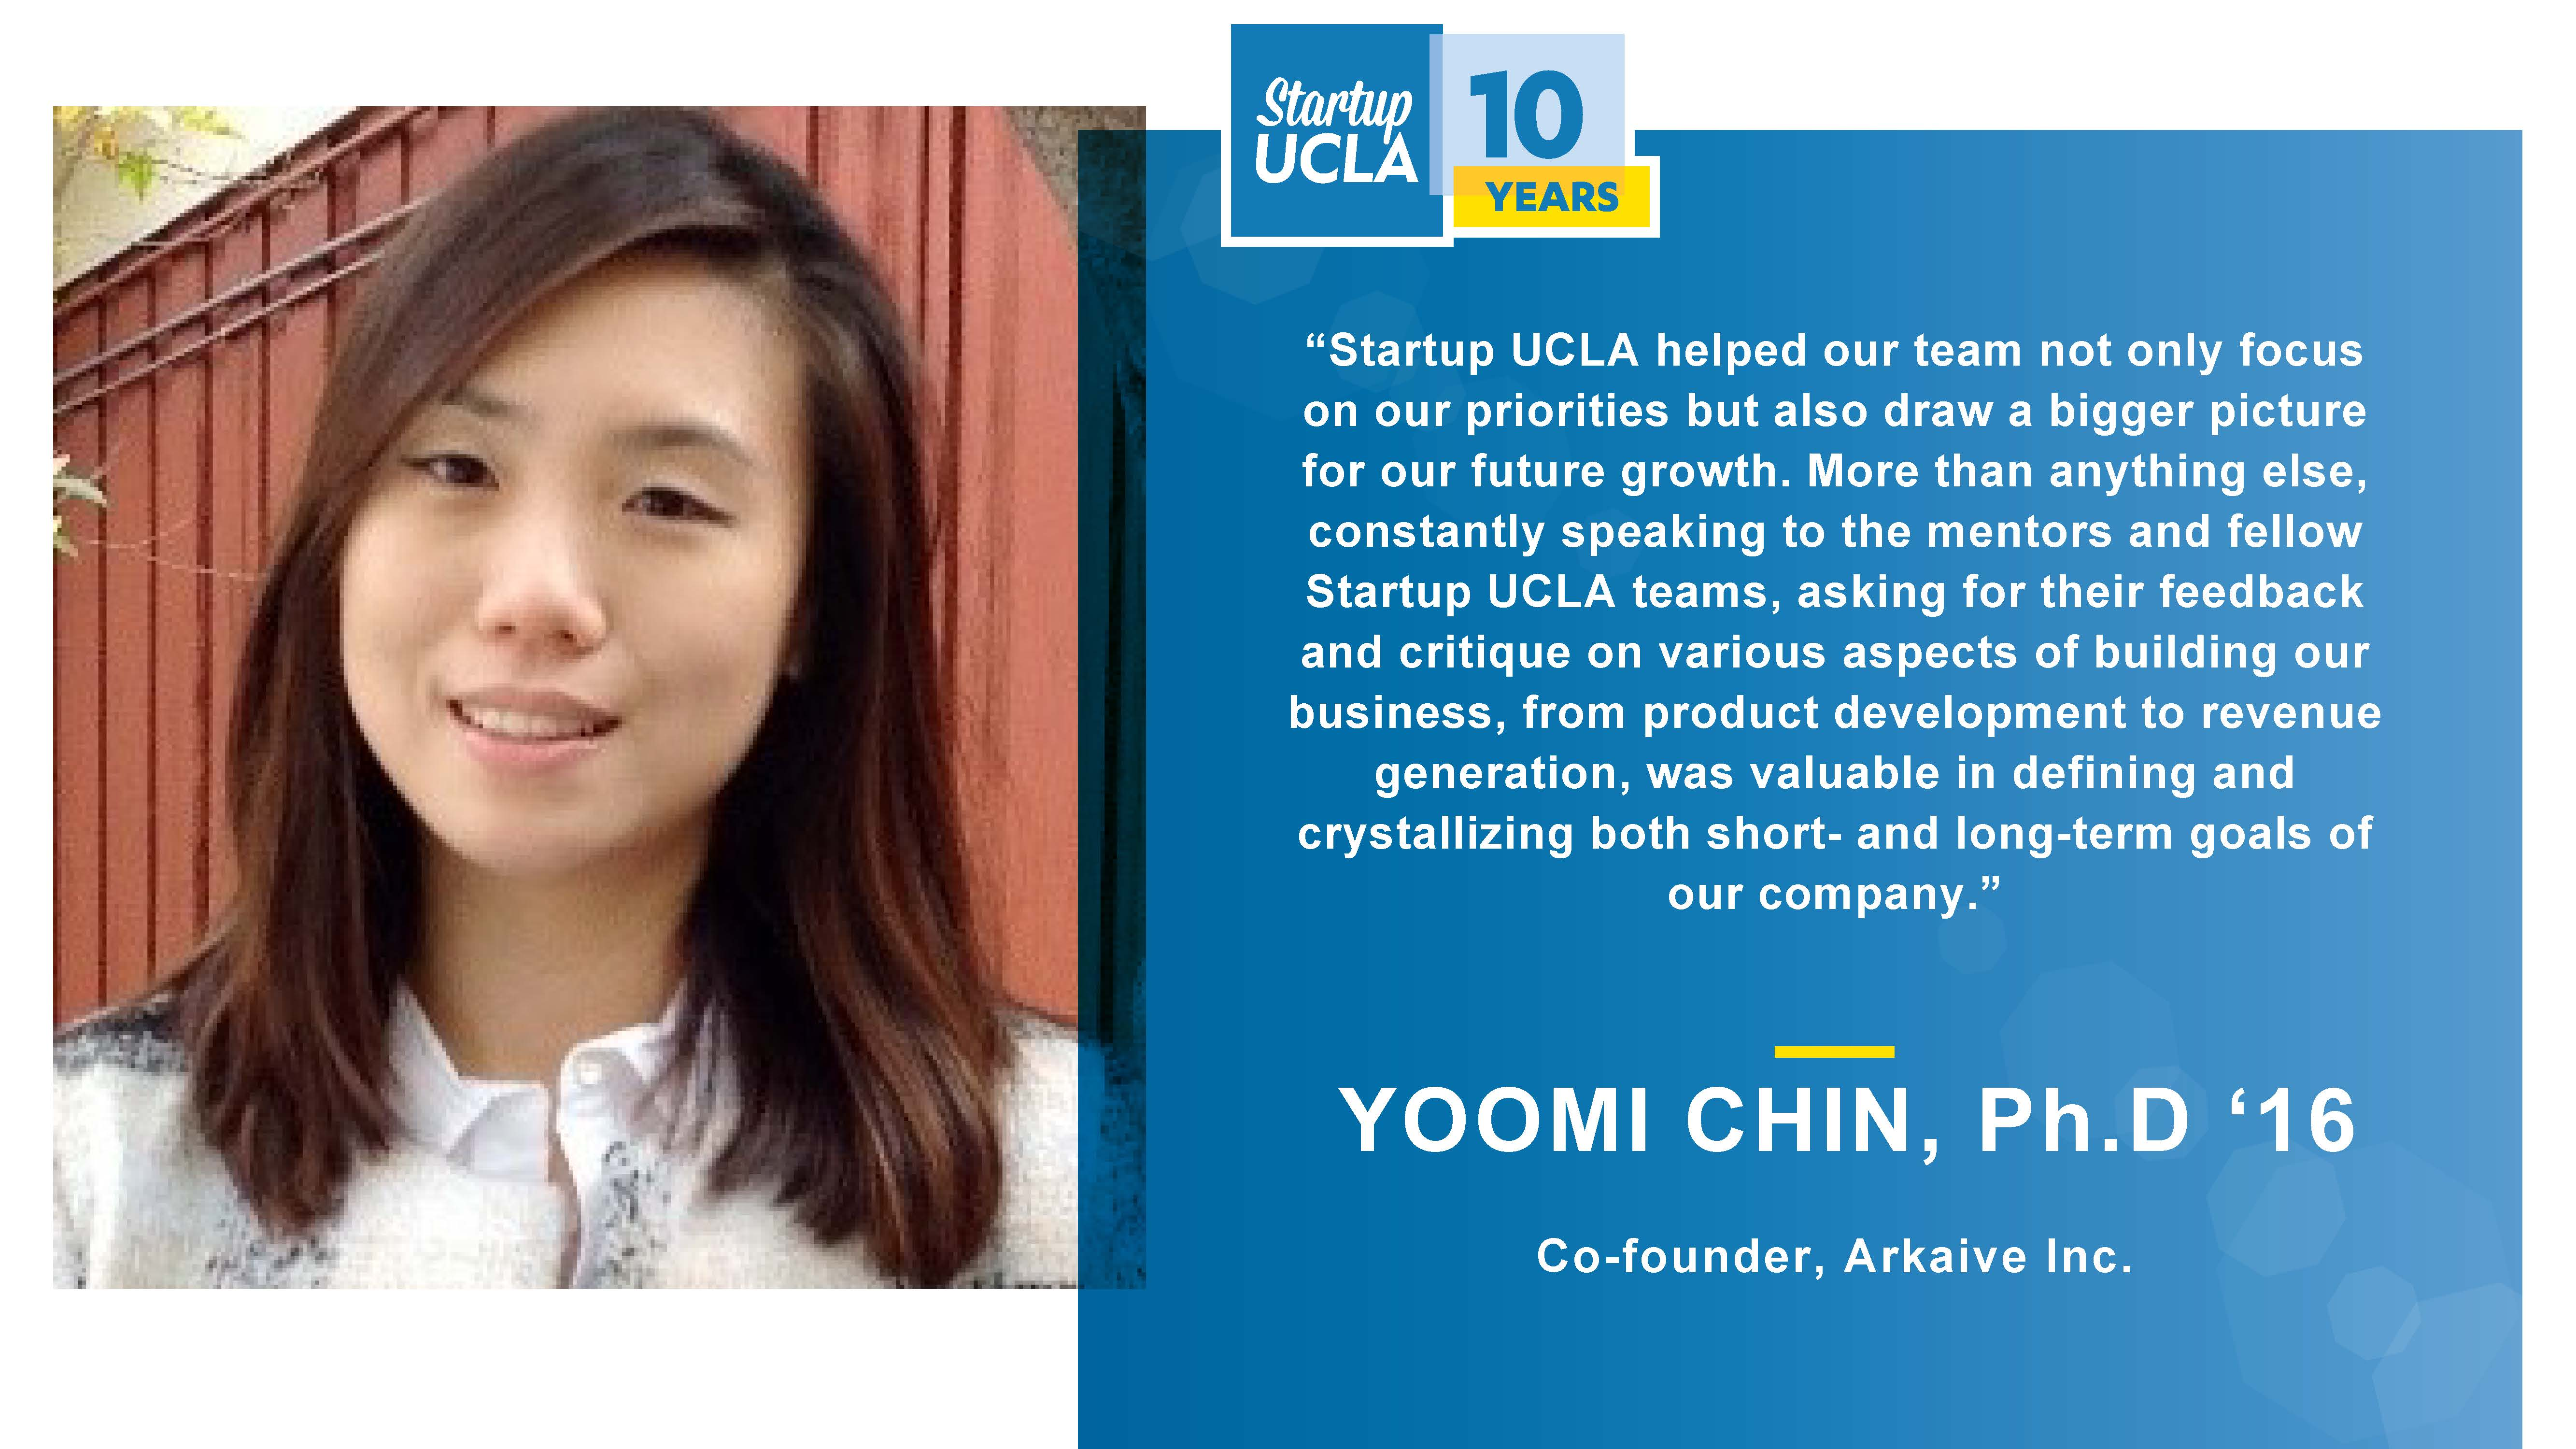 """""""Startup UCLA helped our team not only focus on our priorities but also draw a bigger picture for our future growth. More than anything else, constantly speaking to the mentors and fellow Startup UCLA teams, asking for their feedback and critique on various aspects of building our business, from product development to revenue generation, was valuable in defining and crystallizing both short- and long-term goals of our company."""" Yoomi Chin, Ph.D., Co-founder, Arkaive Inc."""